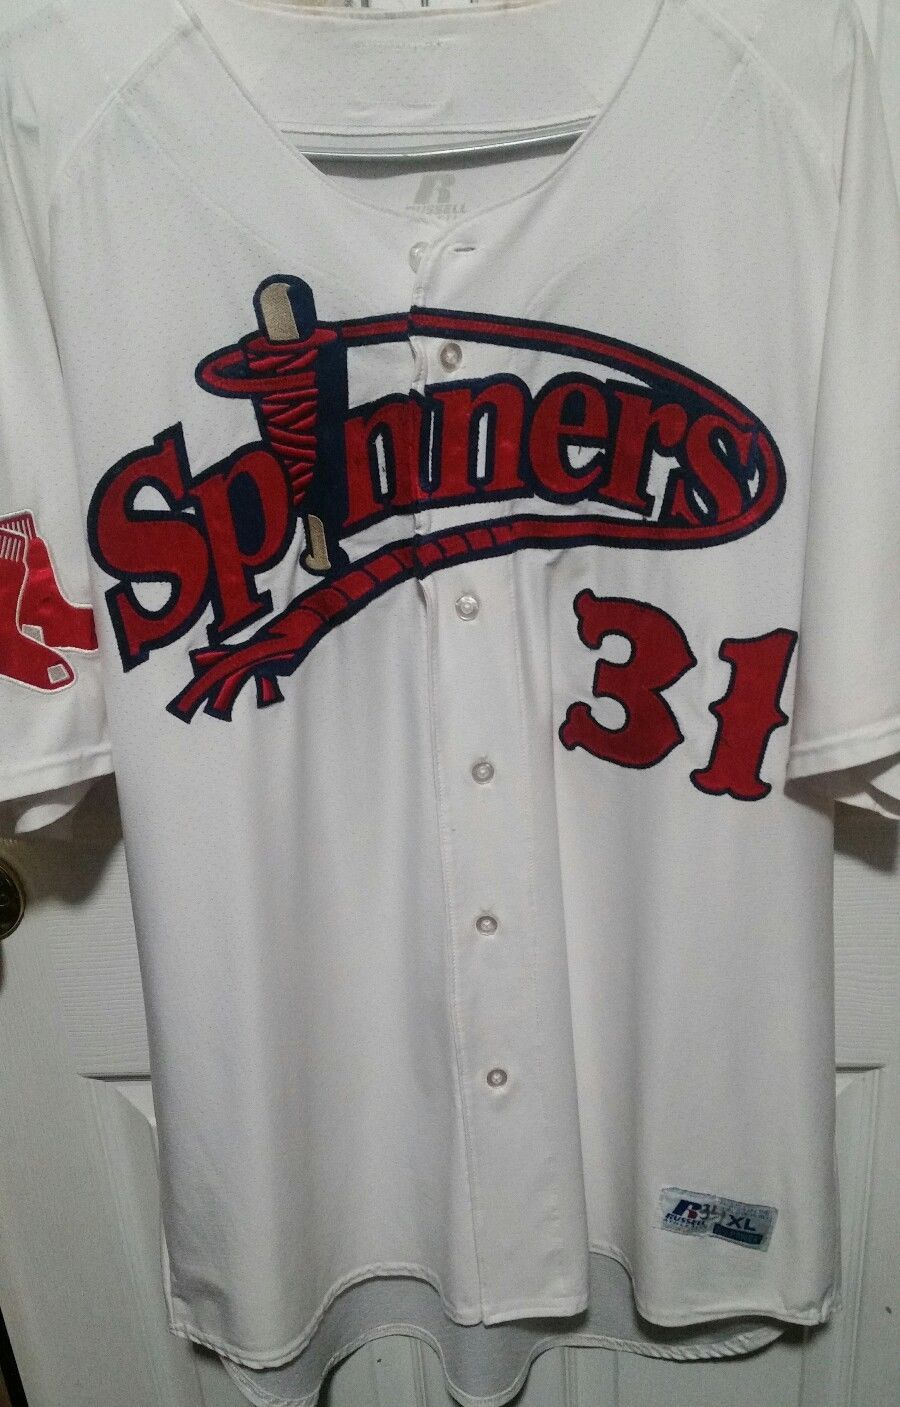 26a7048fc LOWELL SPINNERS RYAN SCOTT GAME USED JERSEY XL GREENVILLE DRIVE ...